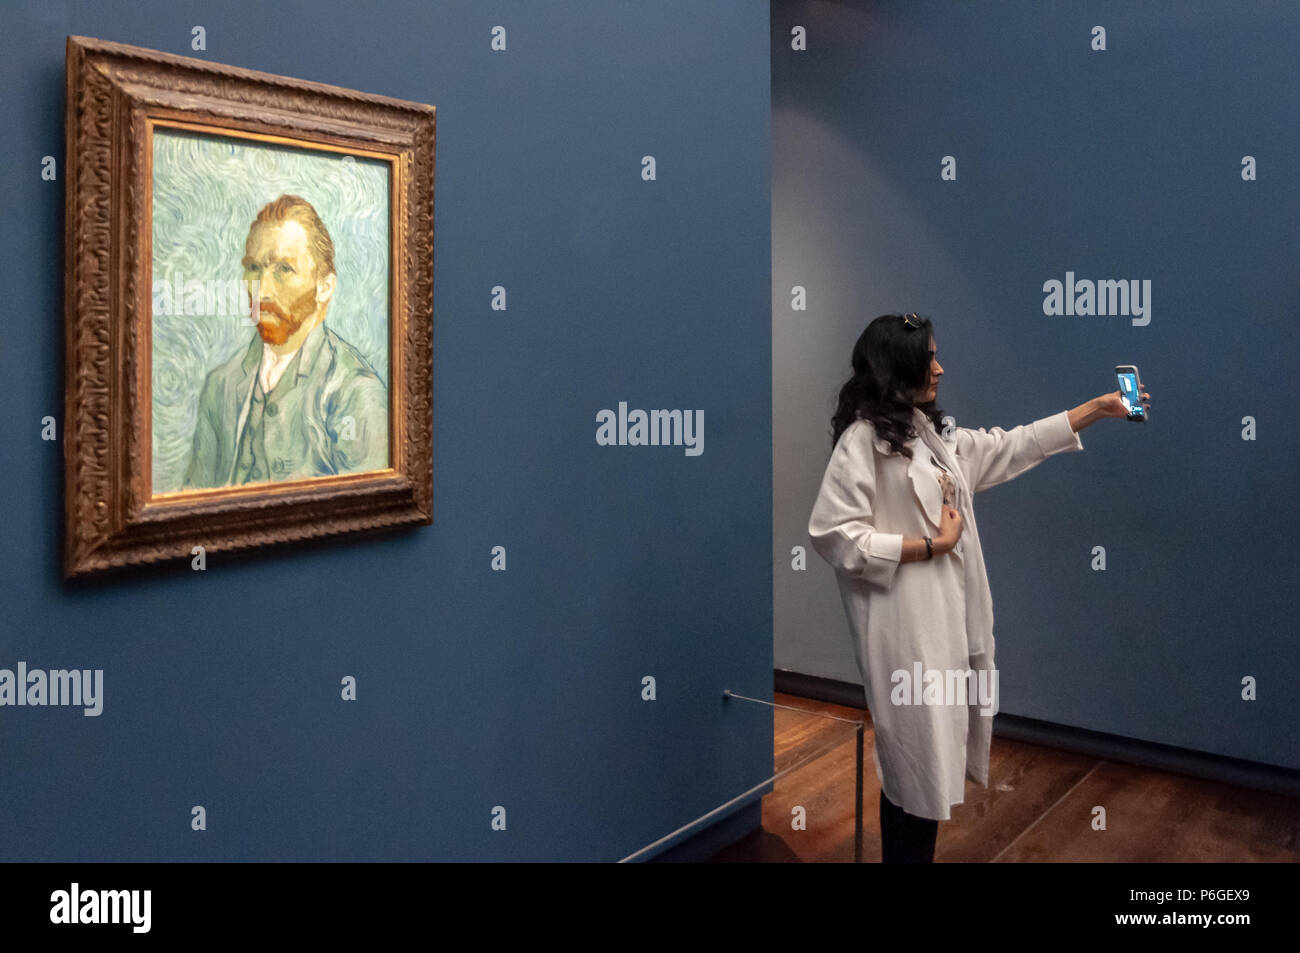 People consuming art at Musée d'Orsay - Stock Image